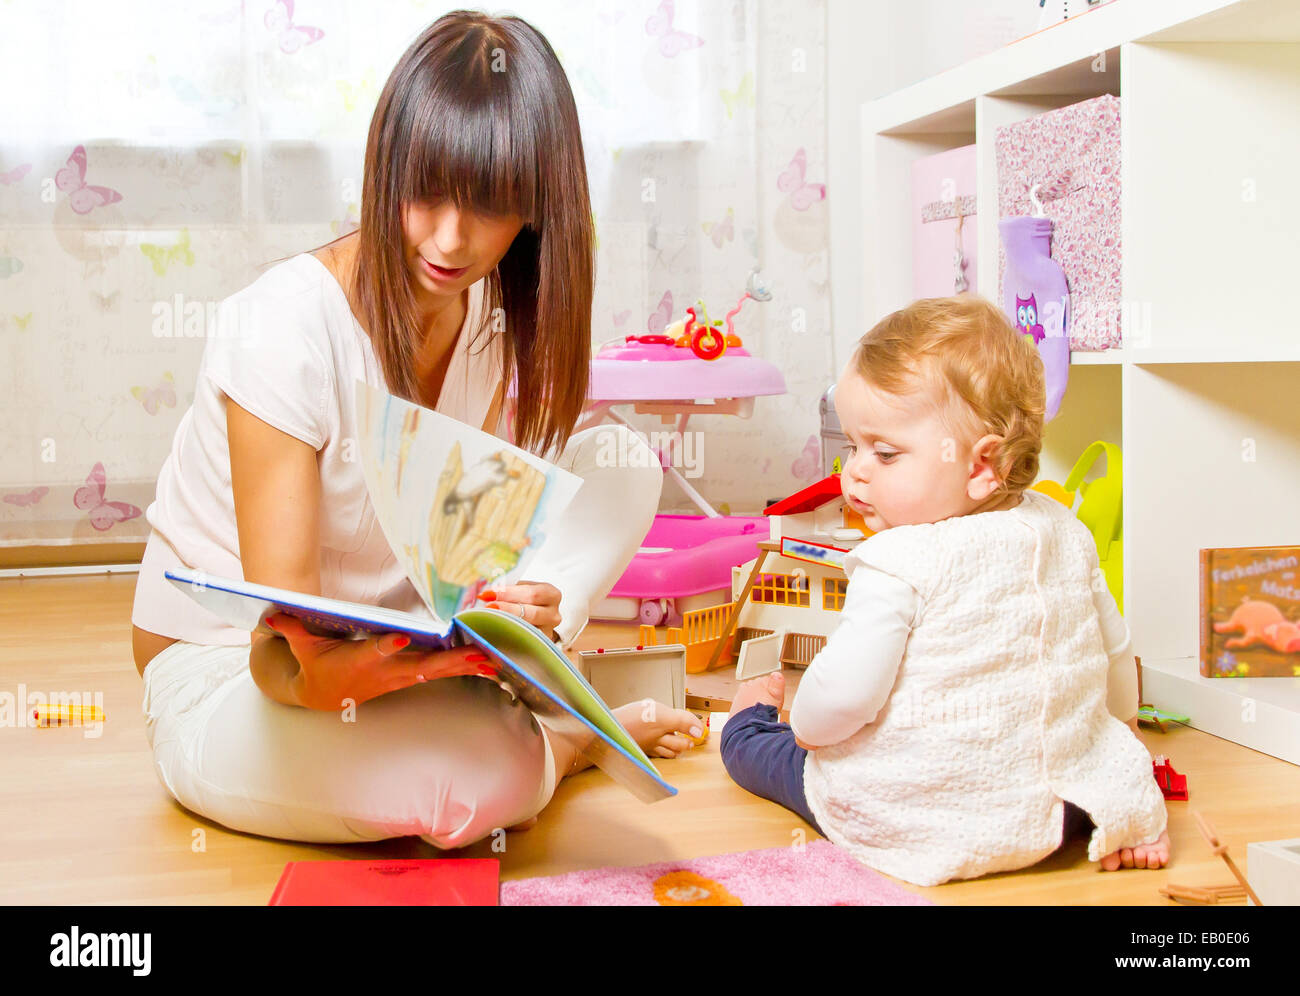 Mother with baby at home - Stock Image